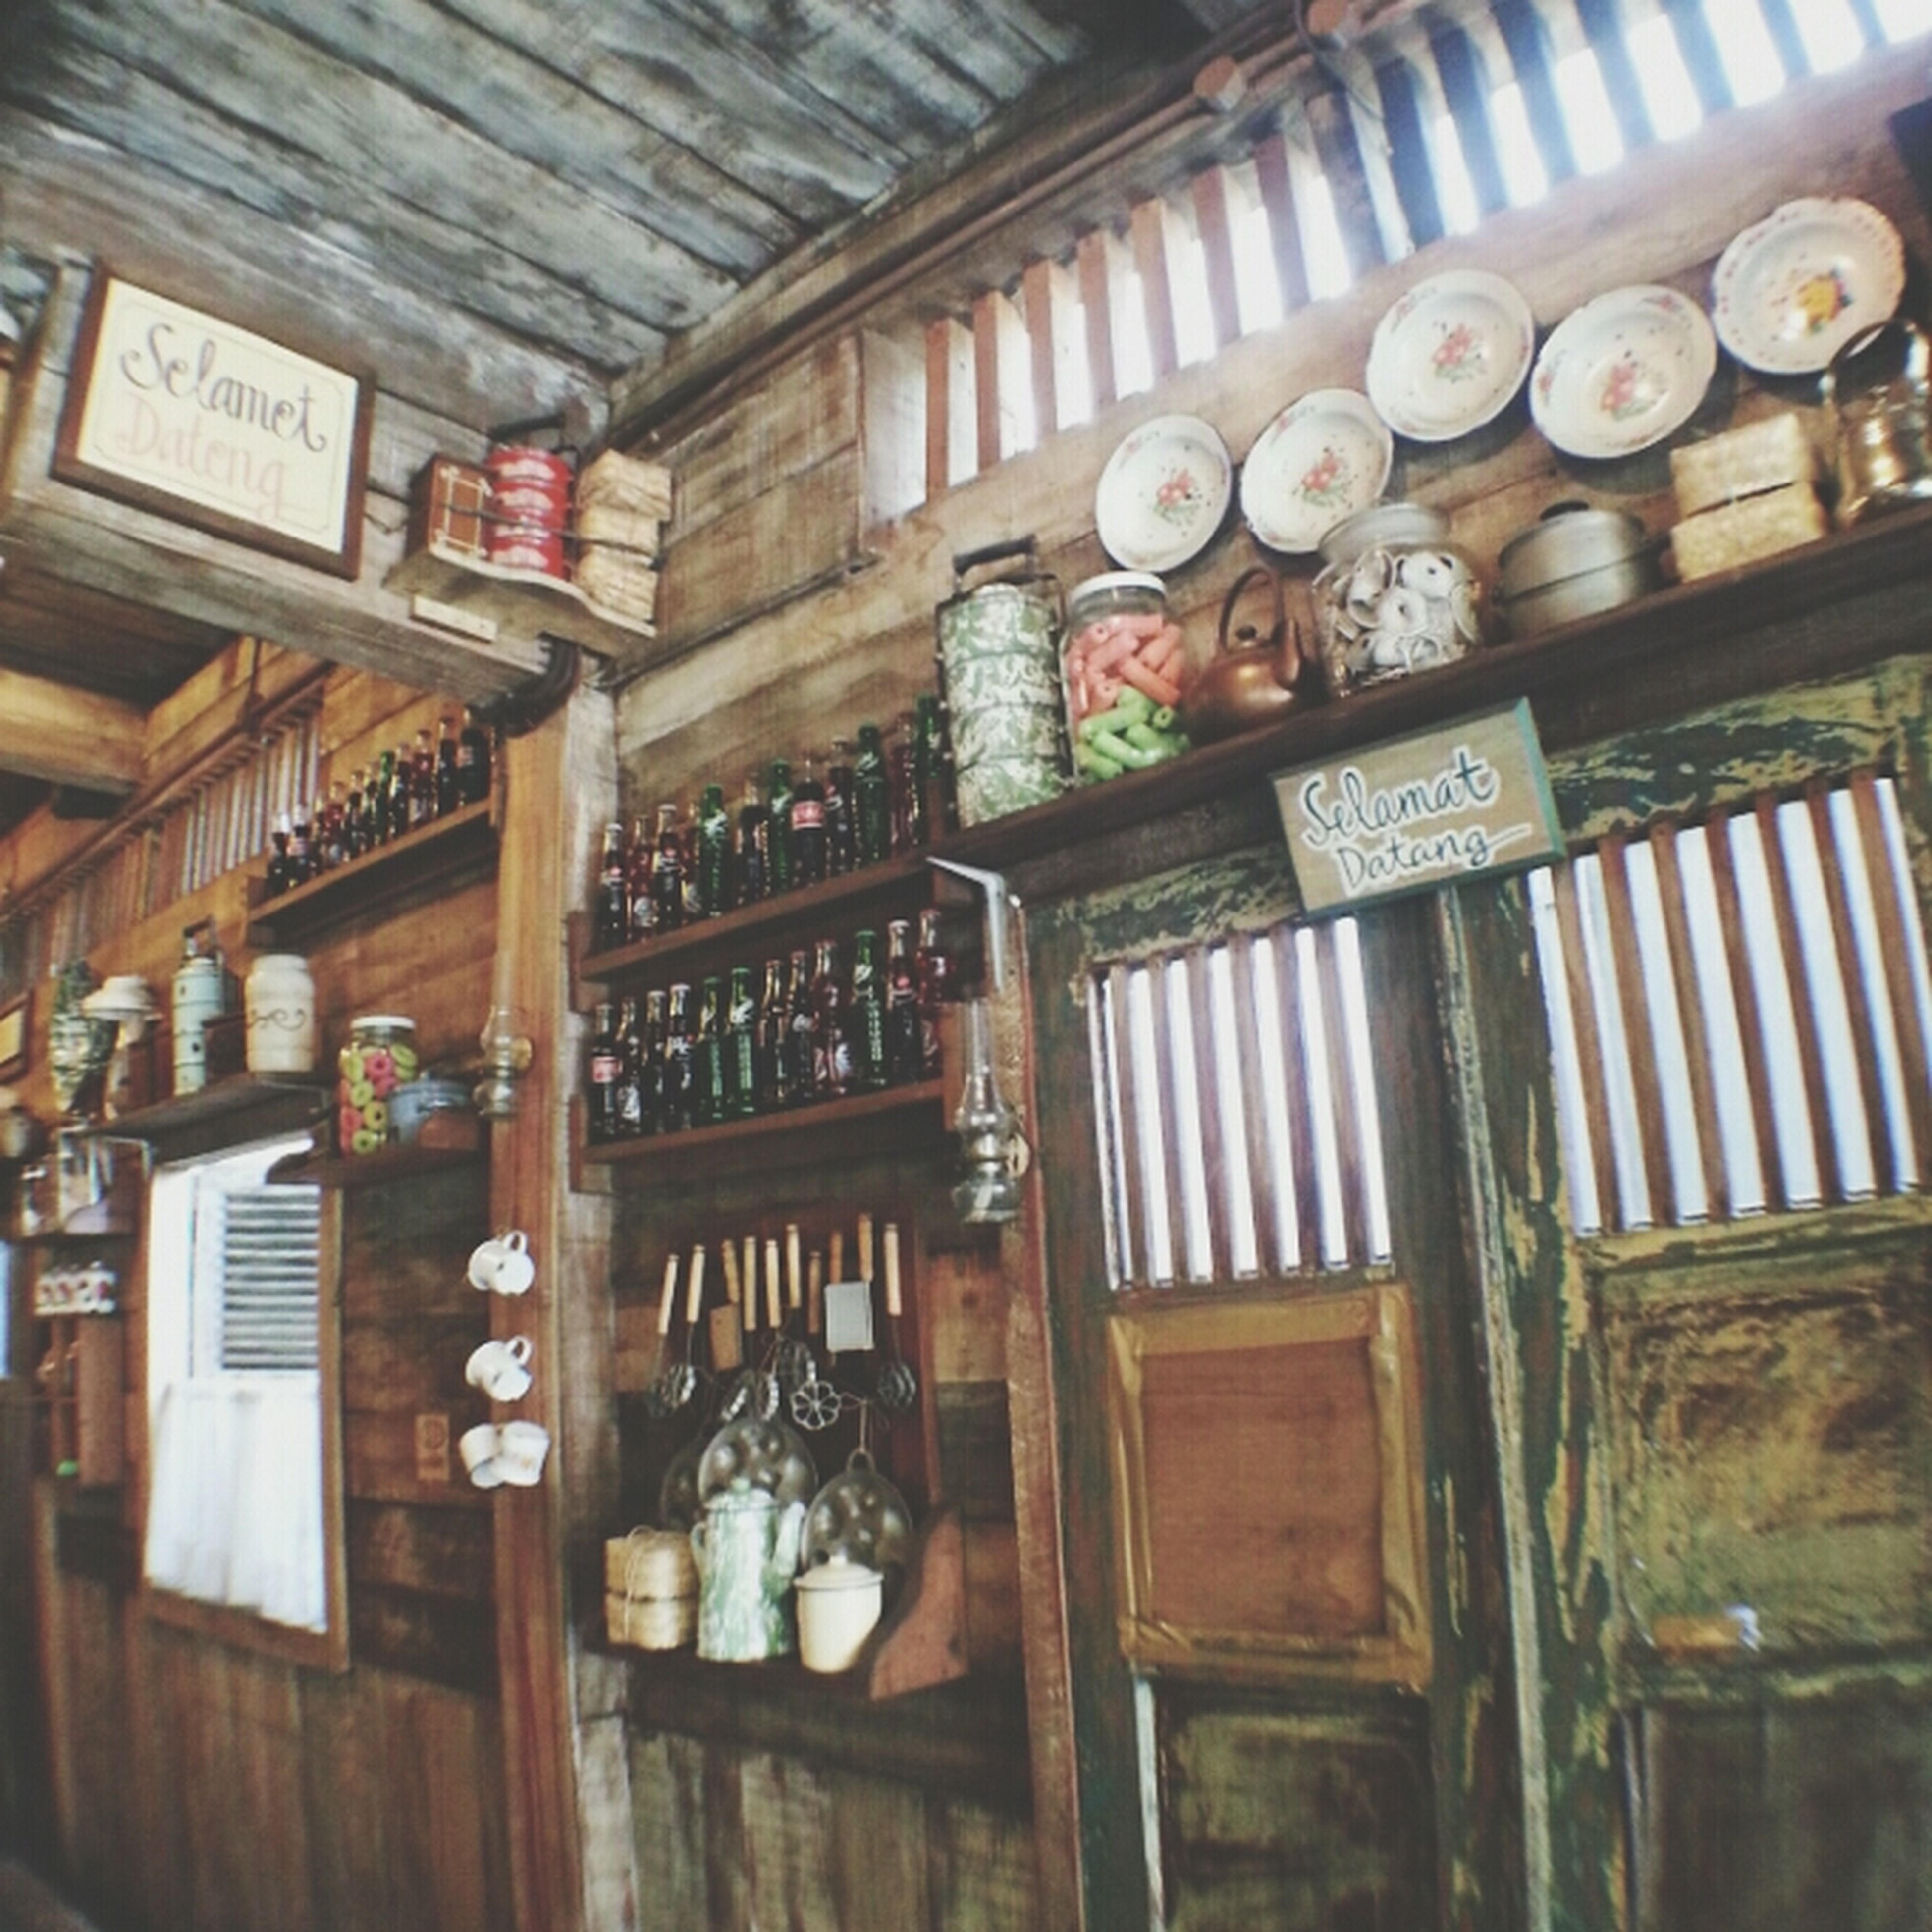 indoors, text, wood - material, western script, communication, window, architecture, old, no people, non-western script, shelf, built structure, hanging, low angle view, door, glass - material, number, house, old-fashioned, wooden